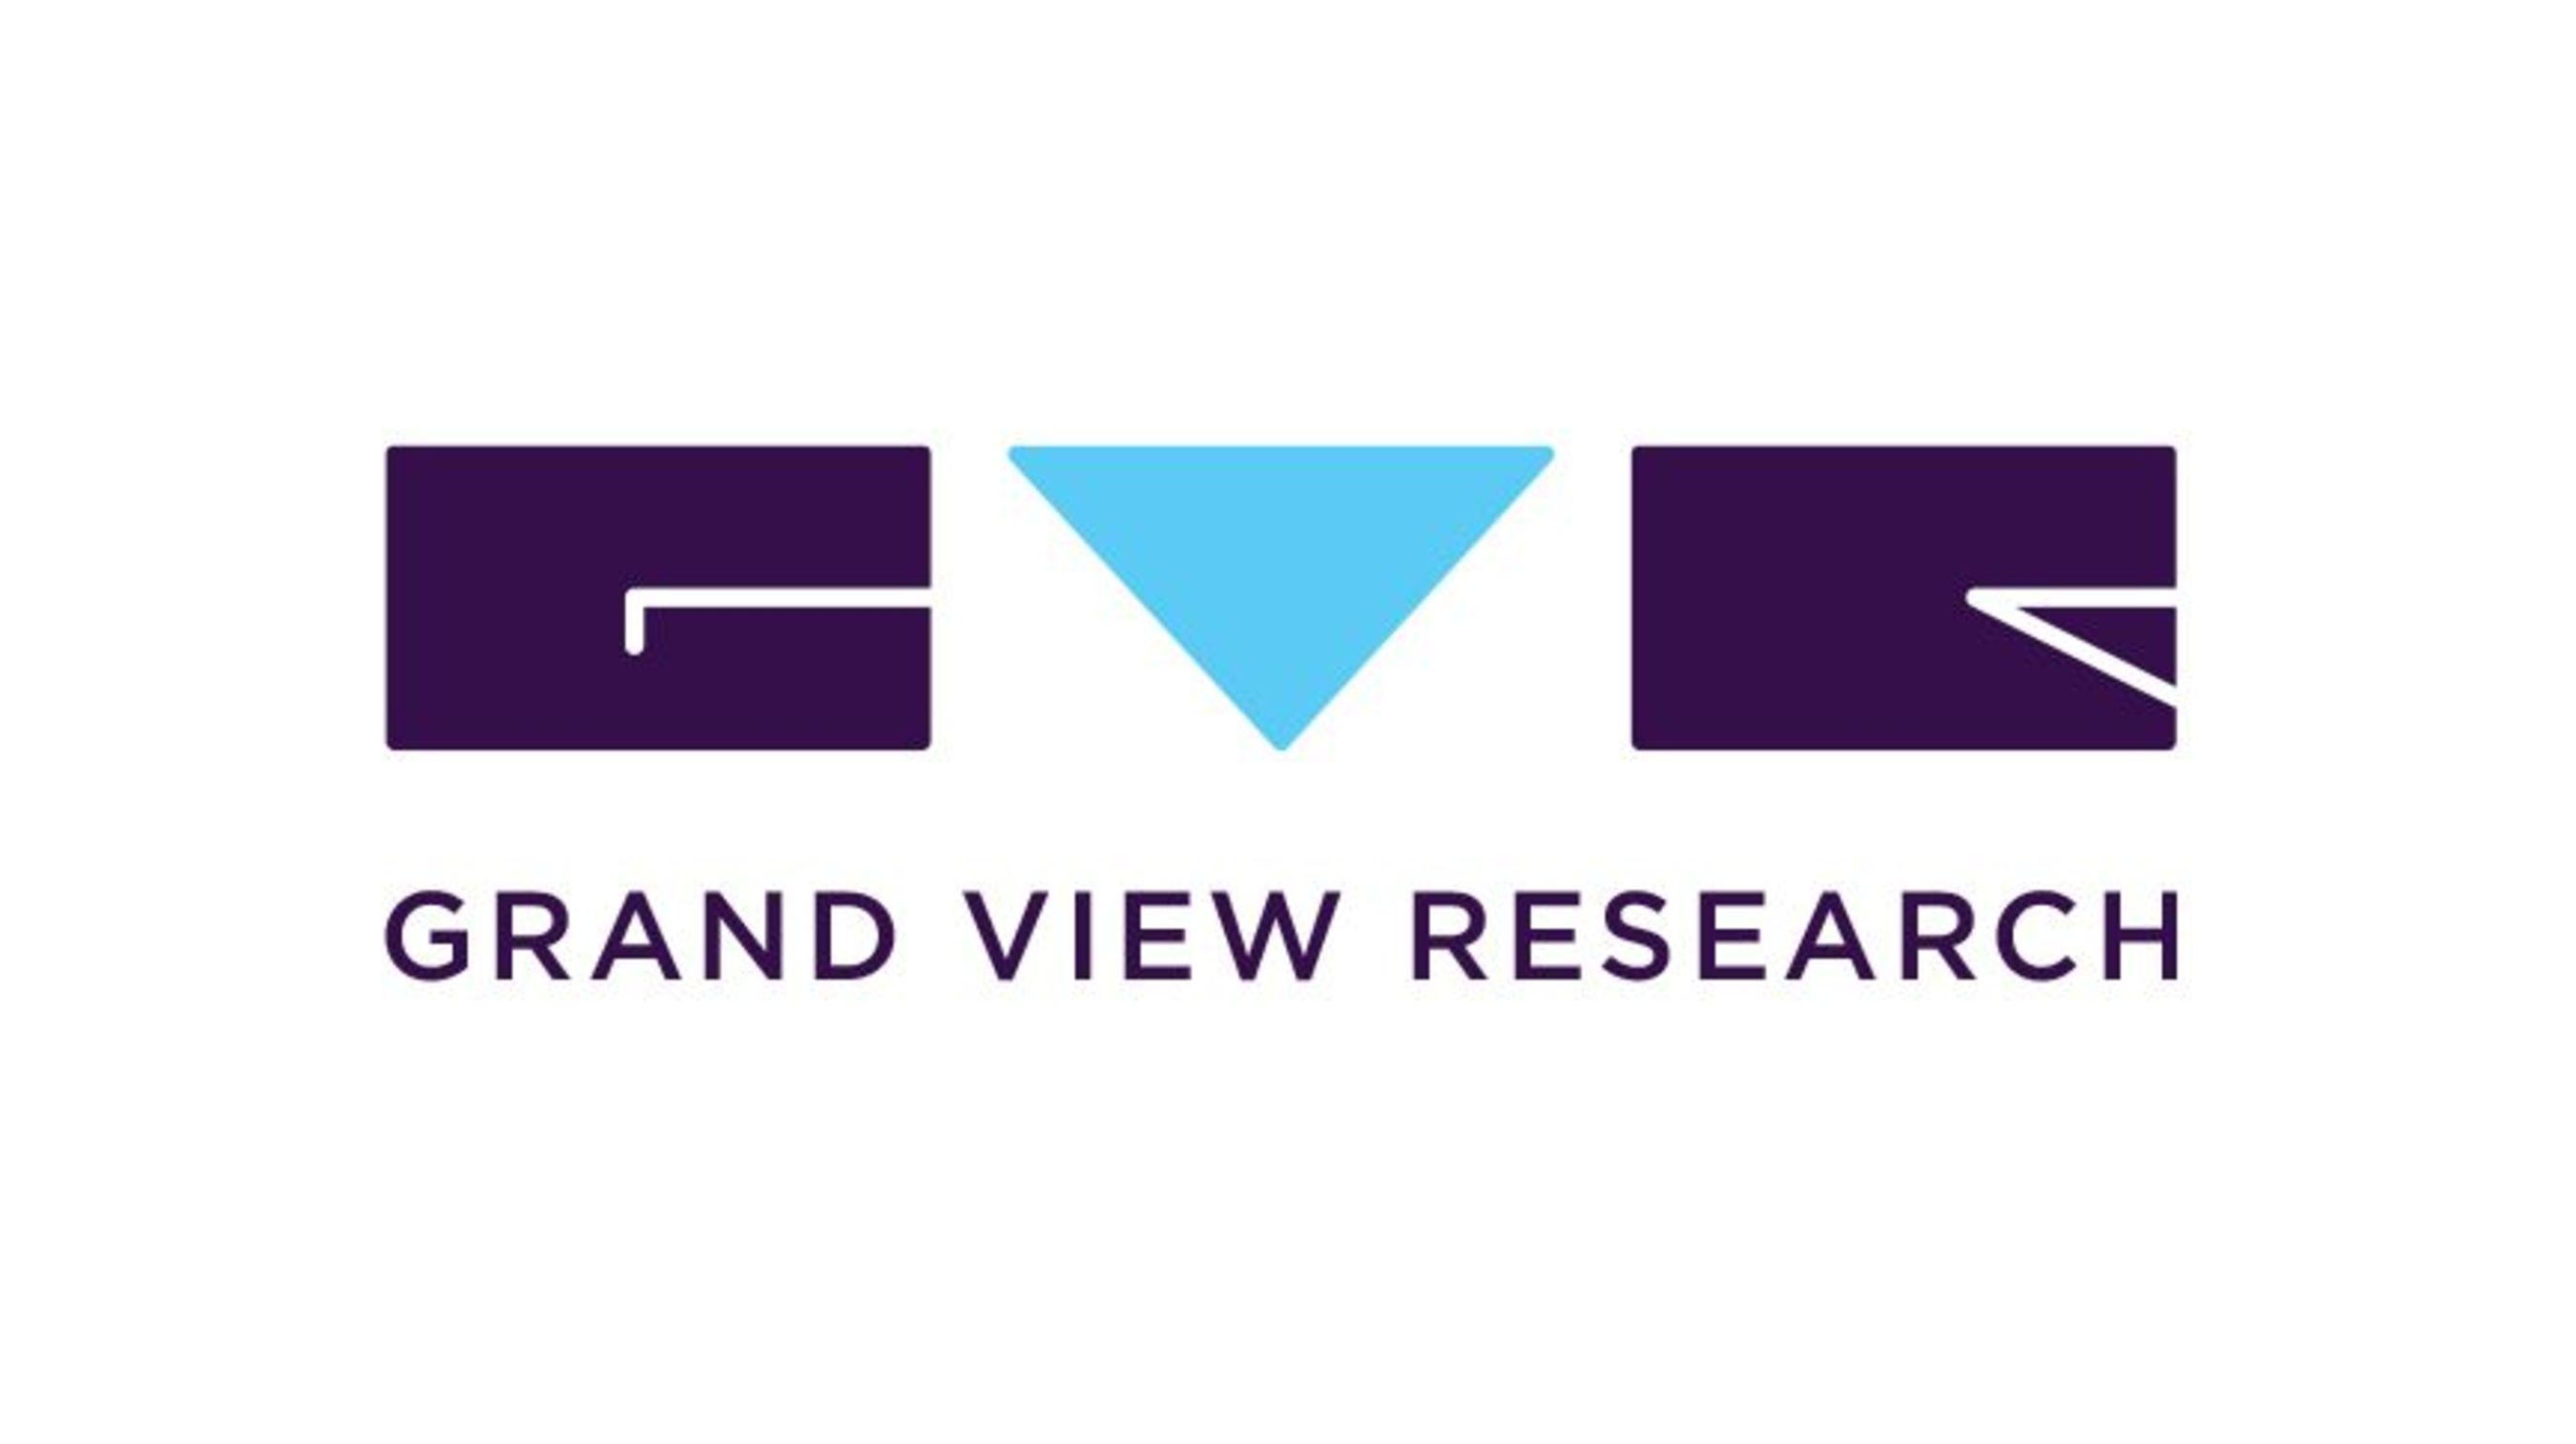 Image Sensors Market Size to Reach $12.03 Billion By 2020: Grand View Research, Inc.